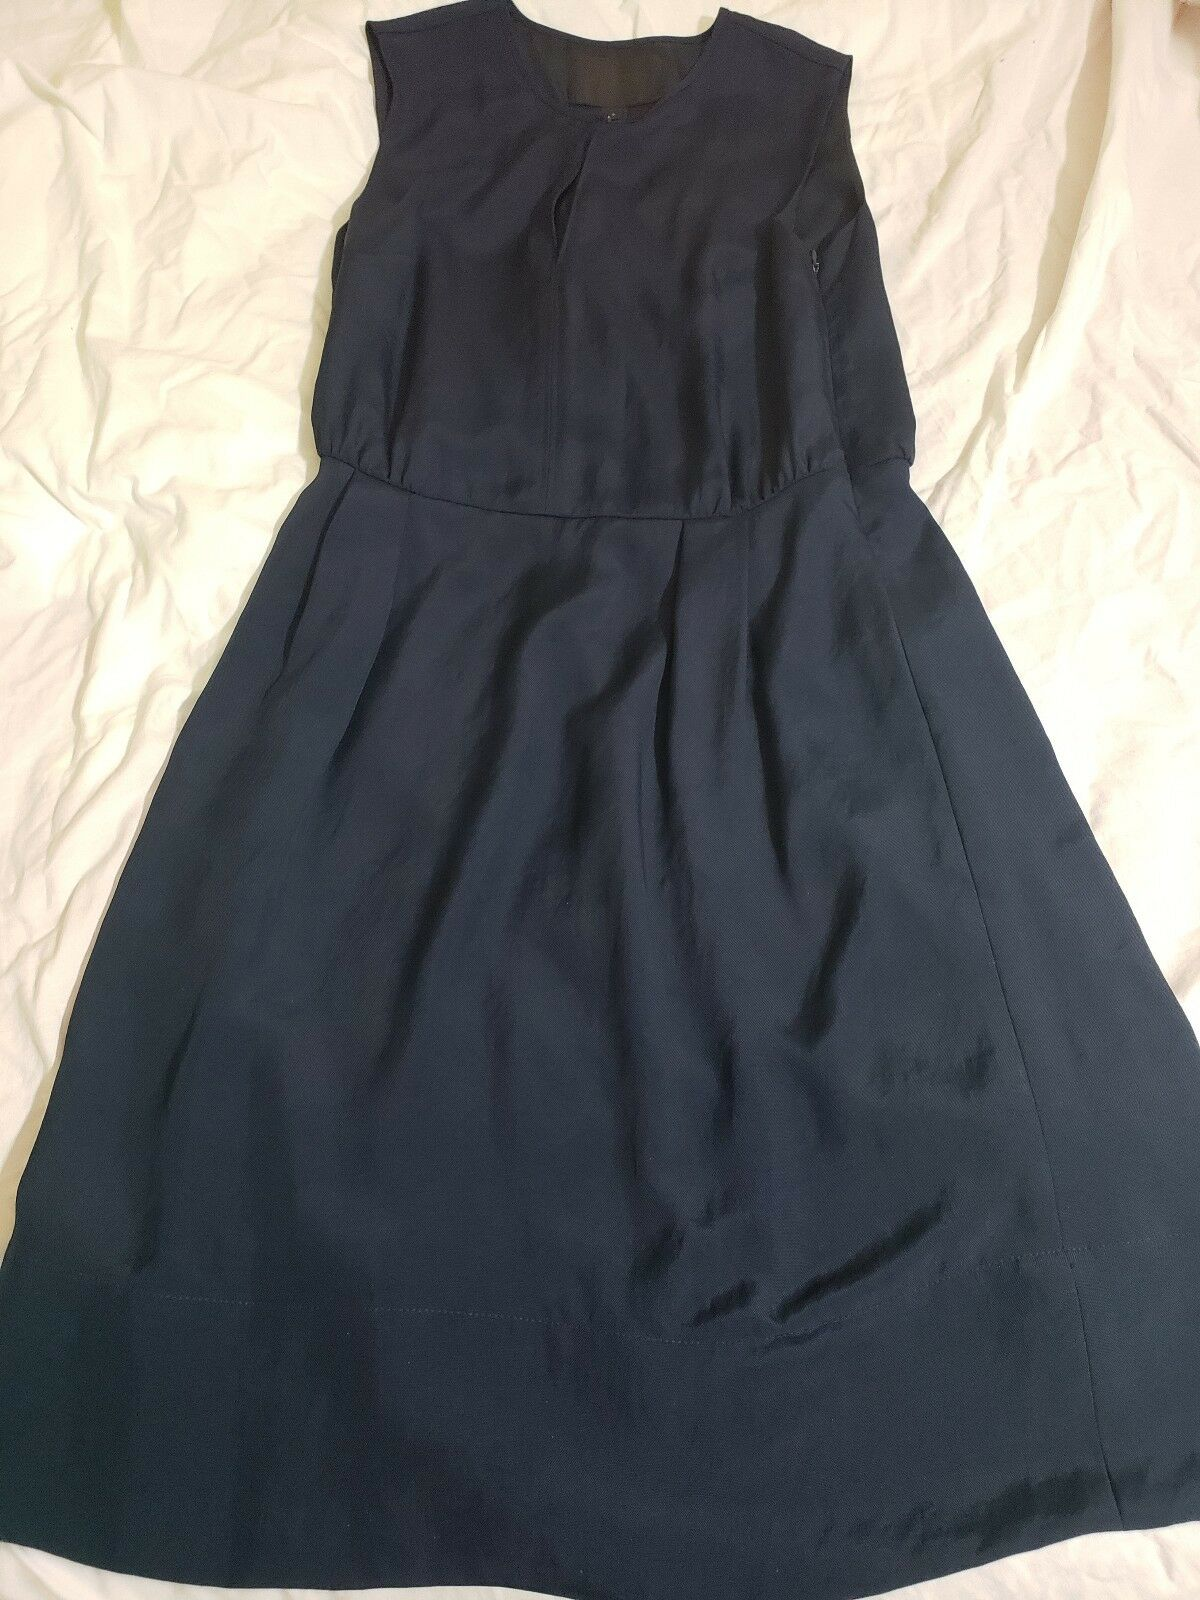 NJ.CREW COLLECTION Size 4 Keyhole Draped Lined Blouson Dress A5413 Navy